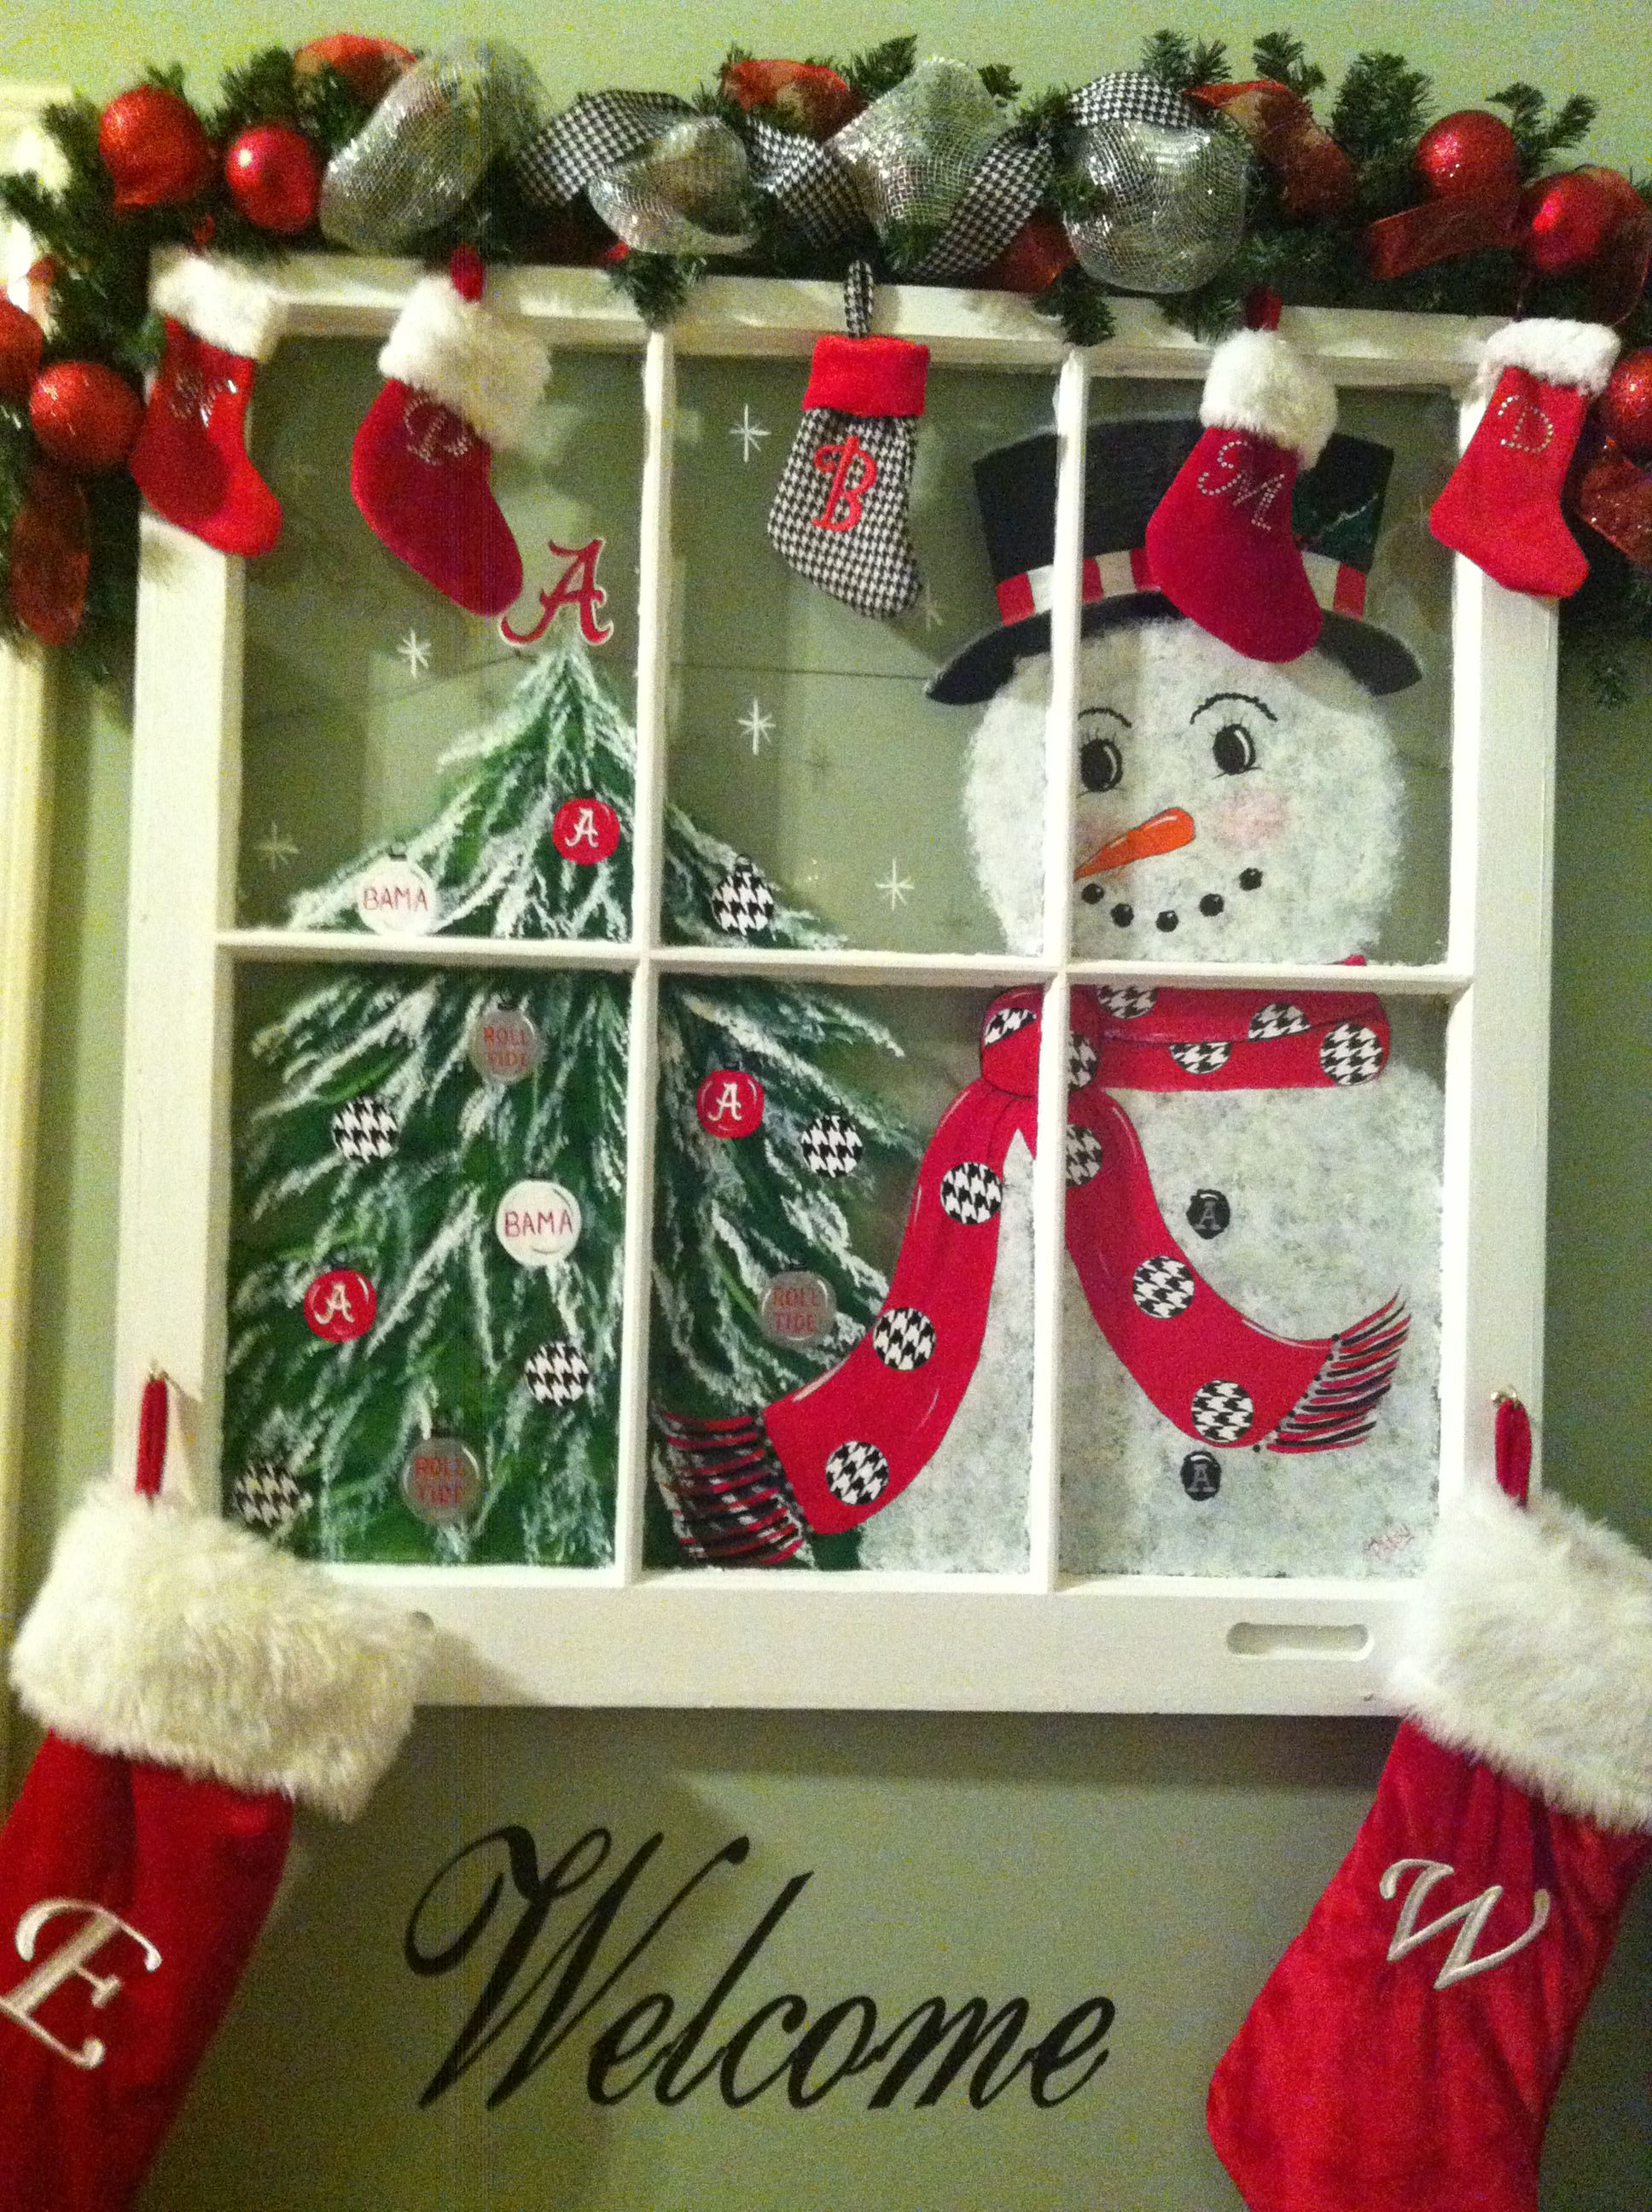 Holiday Window Decorating Ideas Part - 48: A Way To Customize A Window For The Holidays --a Valance Of Cmas Stockings